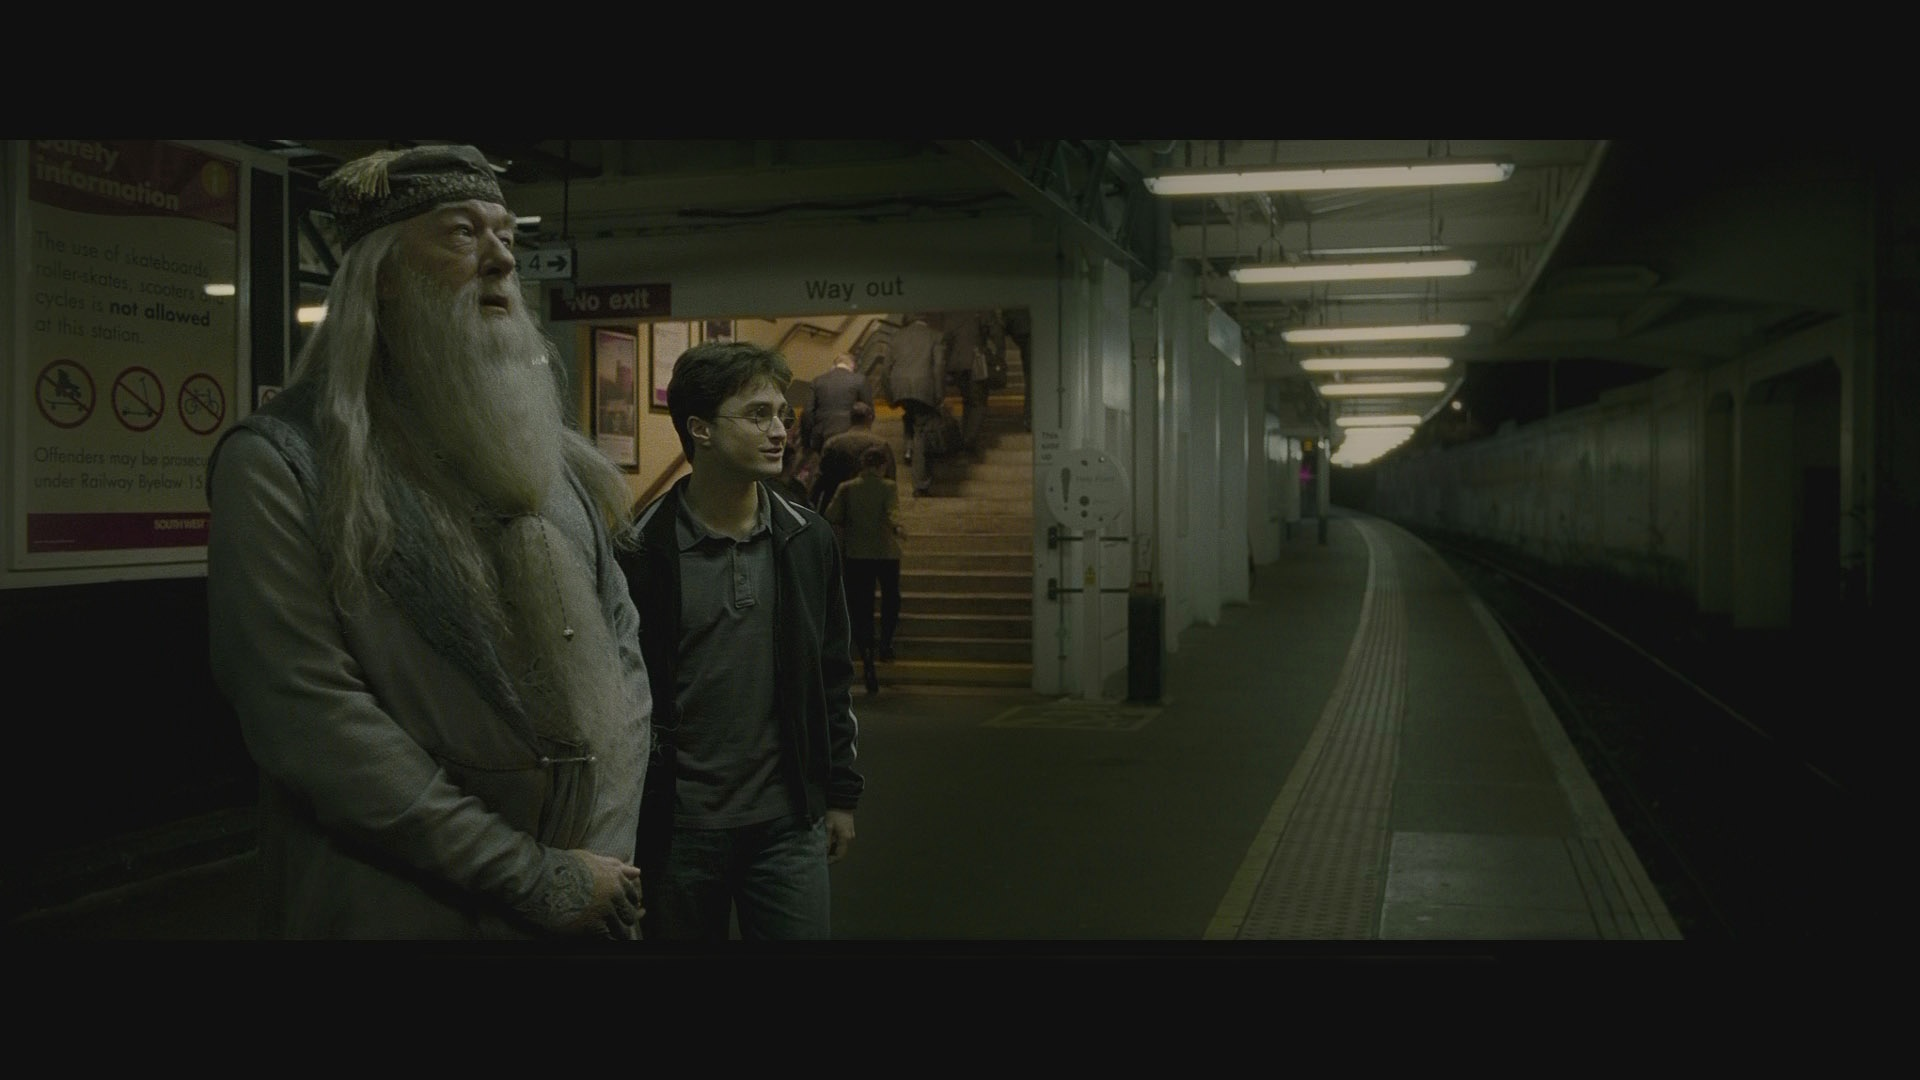 https://blunreview.files.wordpress.com/2010/01/harry_potter_half-blood_prince_blu-ray-01.jpg